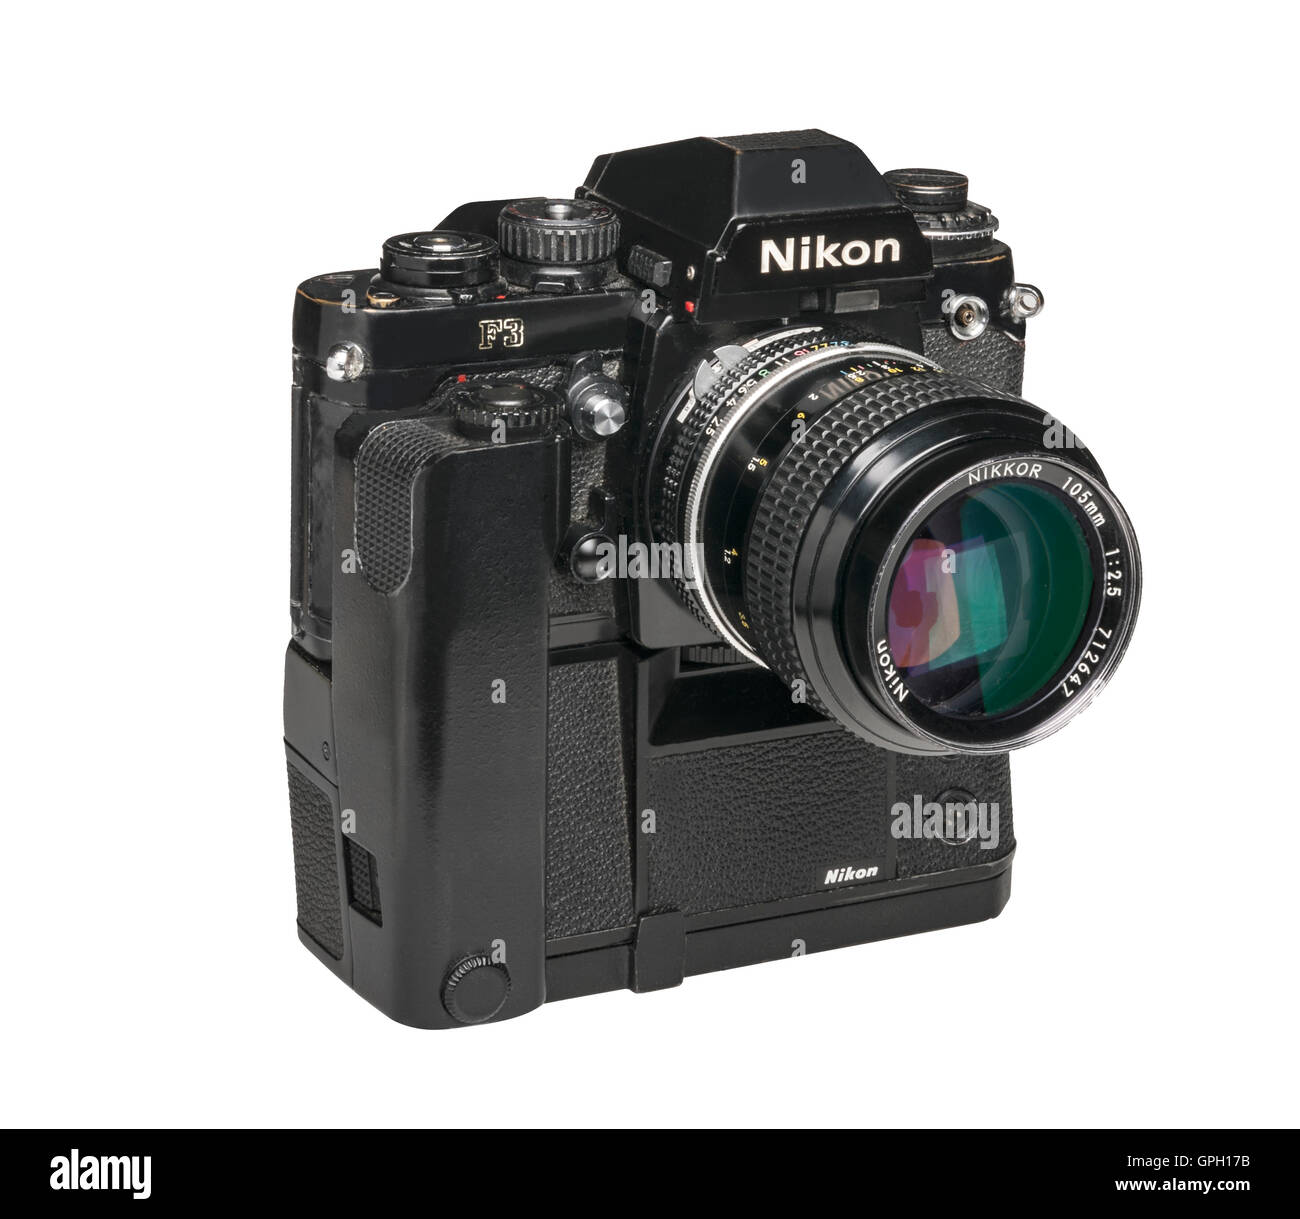 1990 Nikon F3 professional 35mm film camera with MD4 Motordrive and 105 mm lens - Stock Image